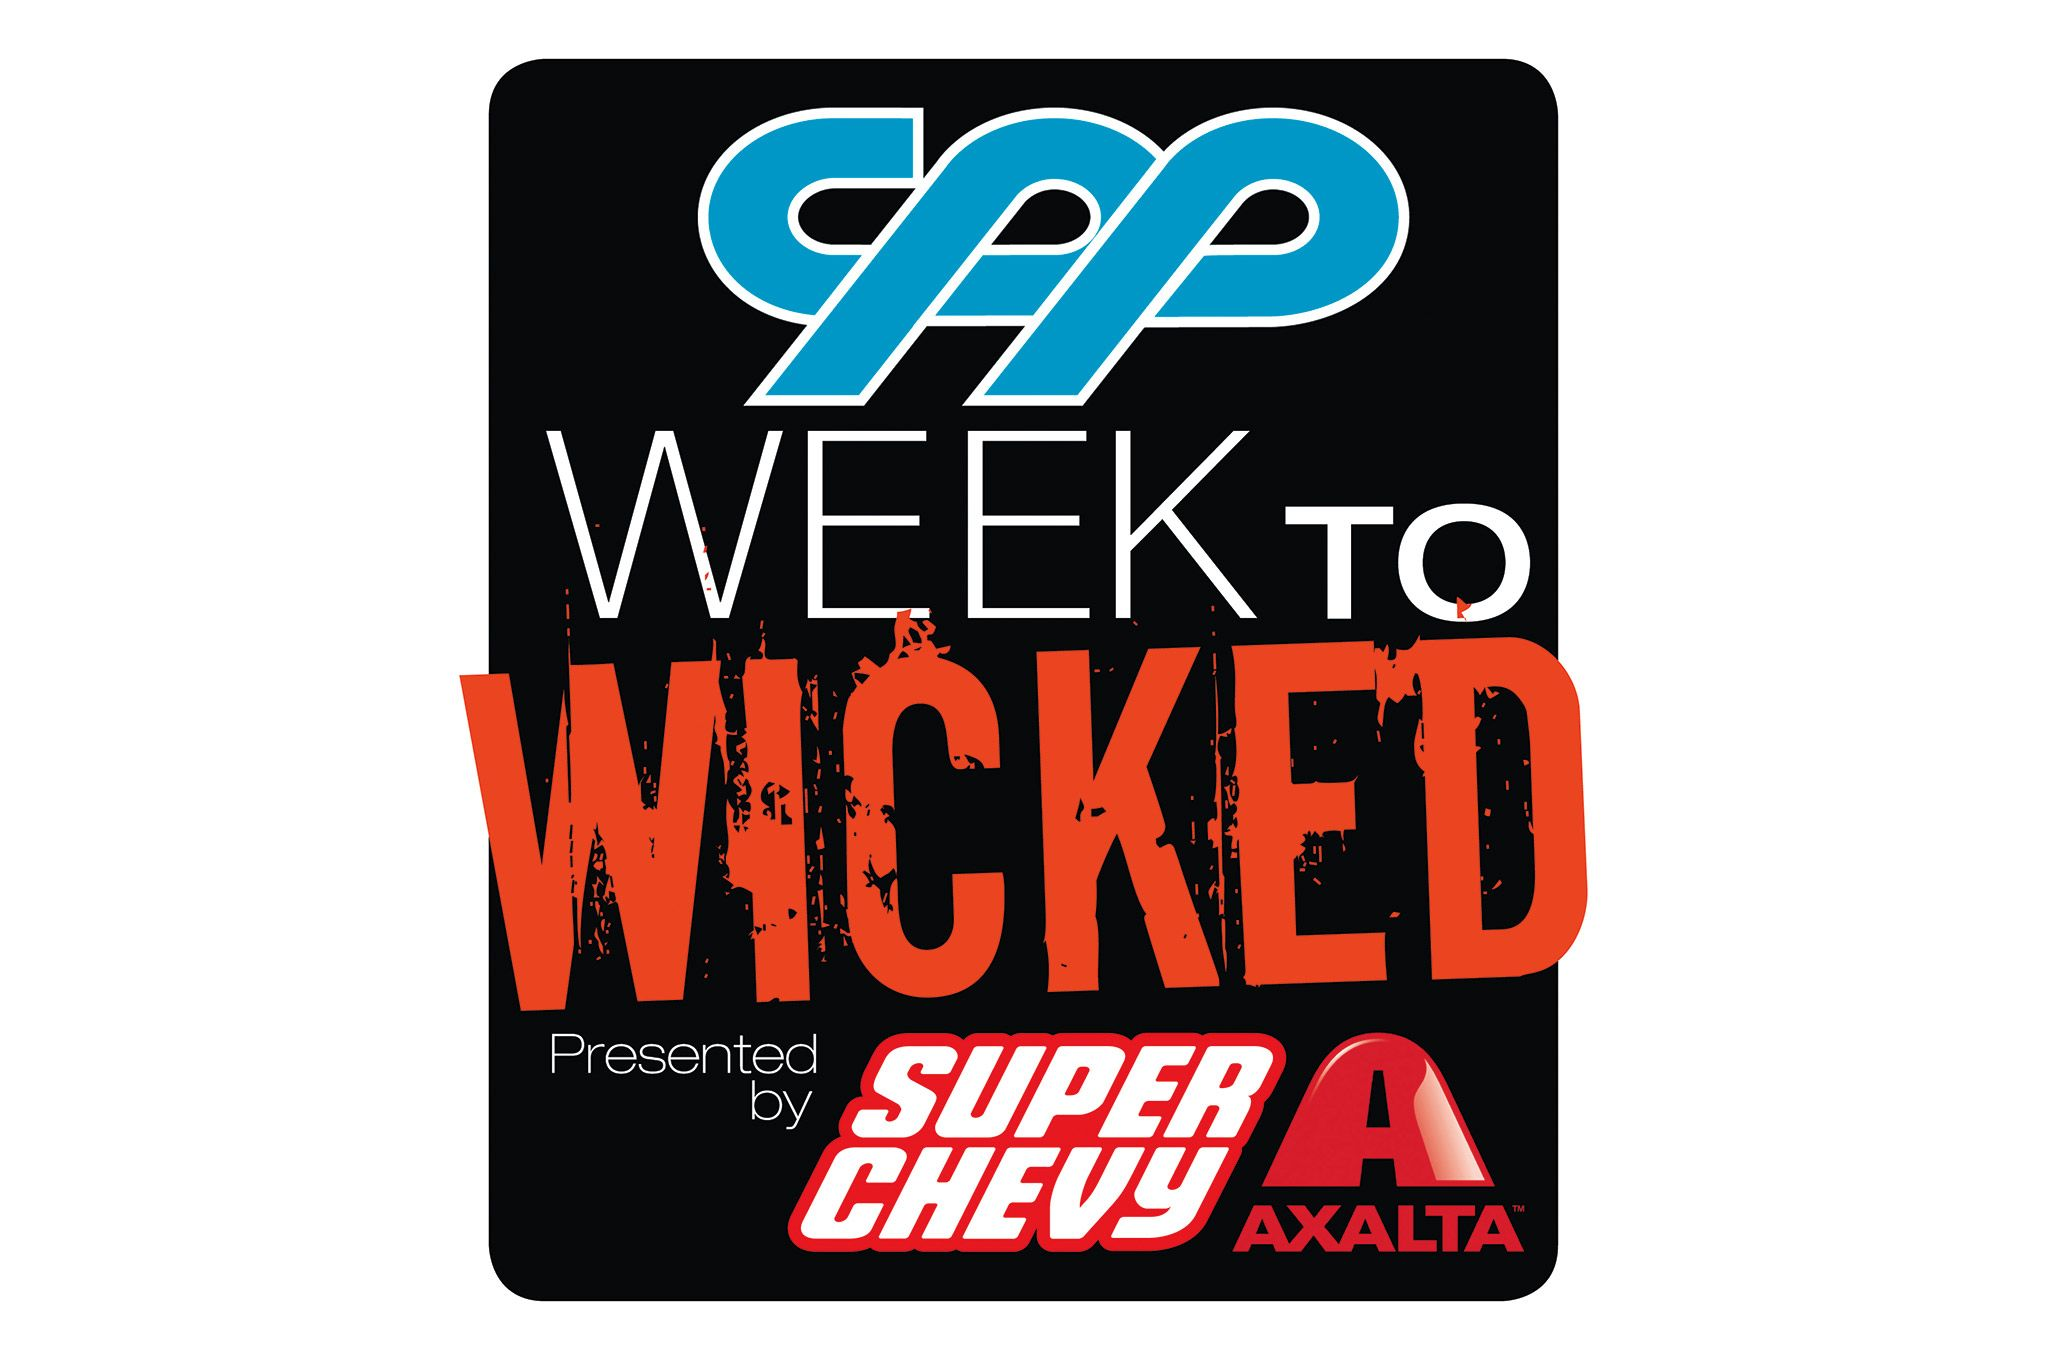 week-to-wicked-logo-super-chevy-cpp-axalta